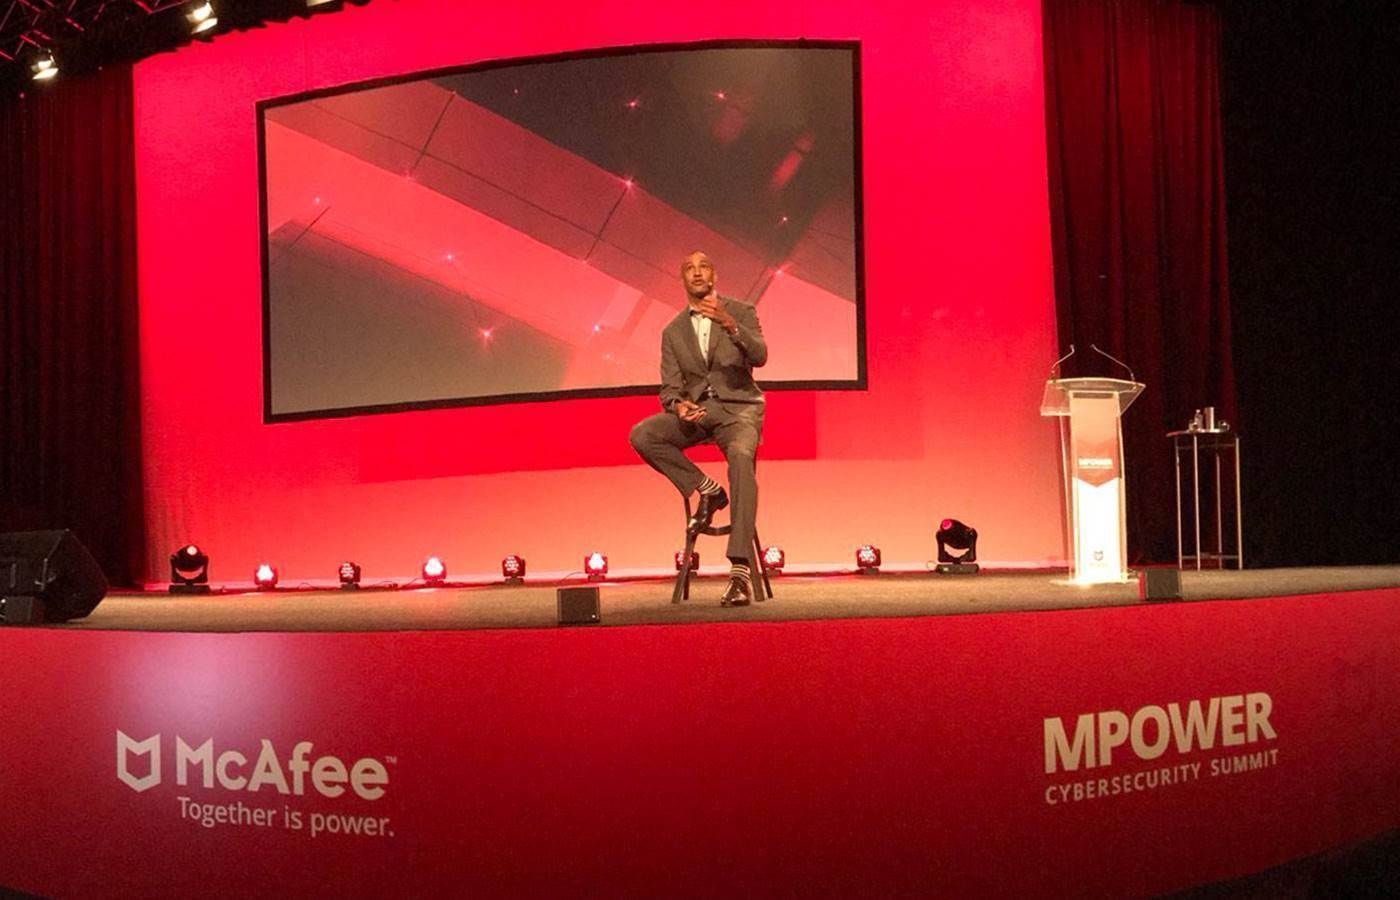 McAfee names DiData as its top Australian partner